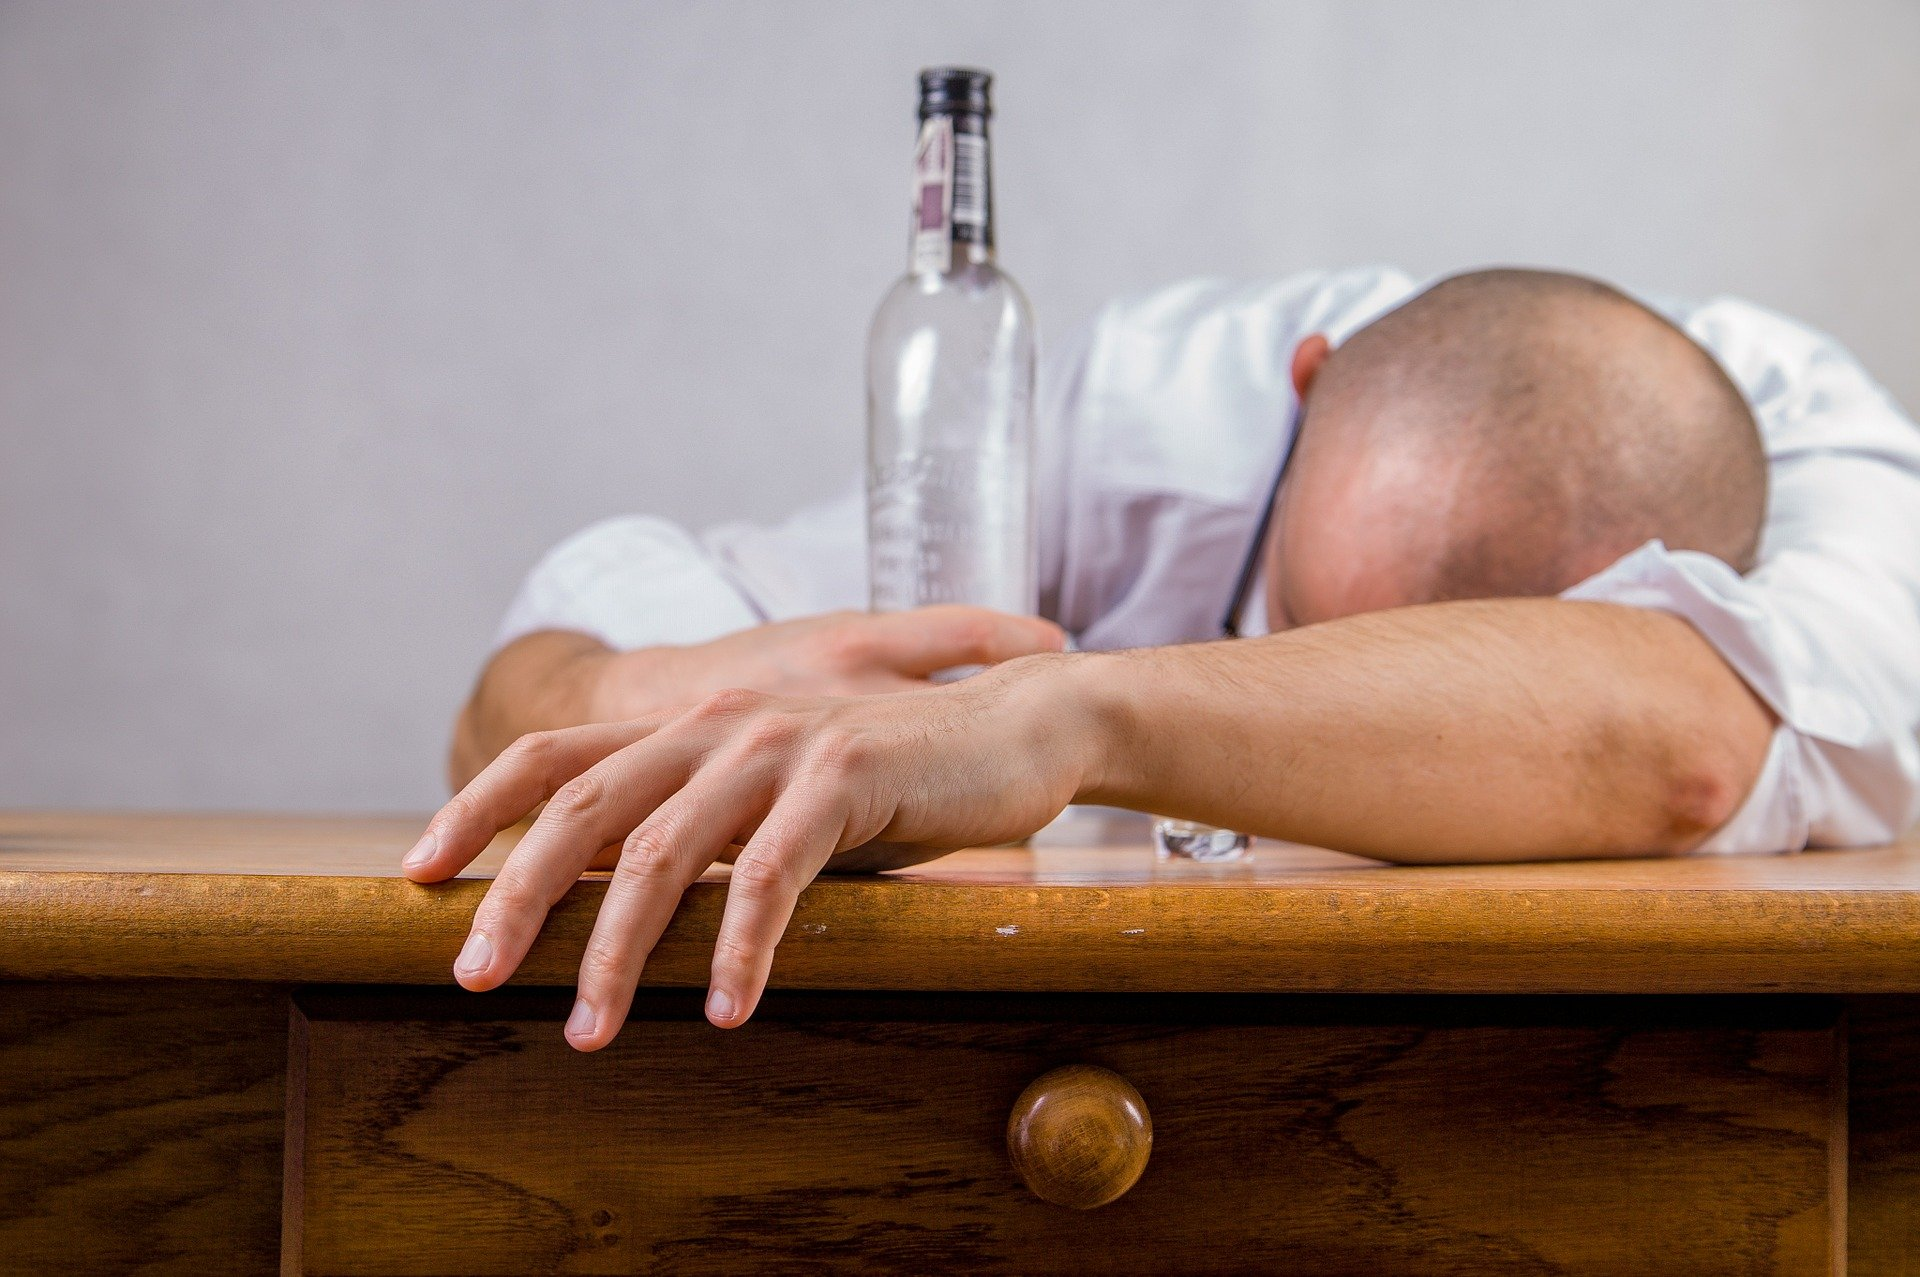 A drunk man lying on a table sleeping while holding on to an alcohol bottle | Photo: Pixabay/Michal Jarmoluk